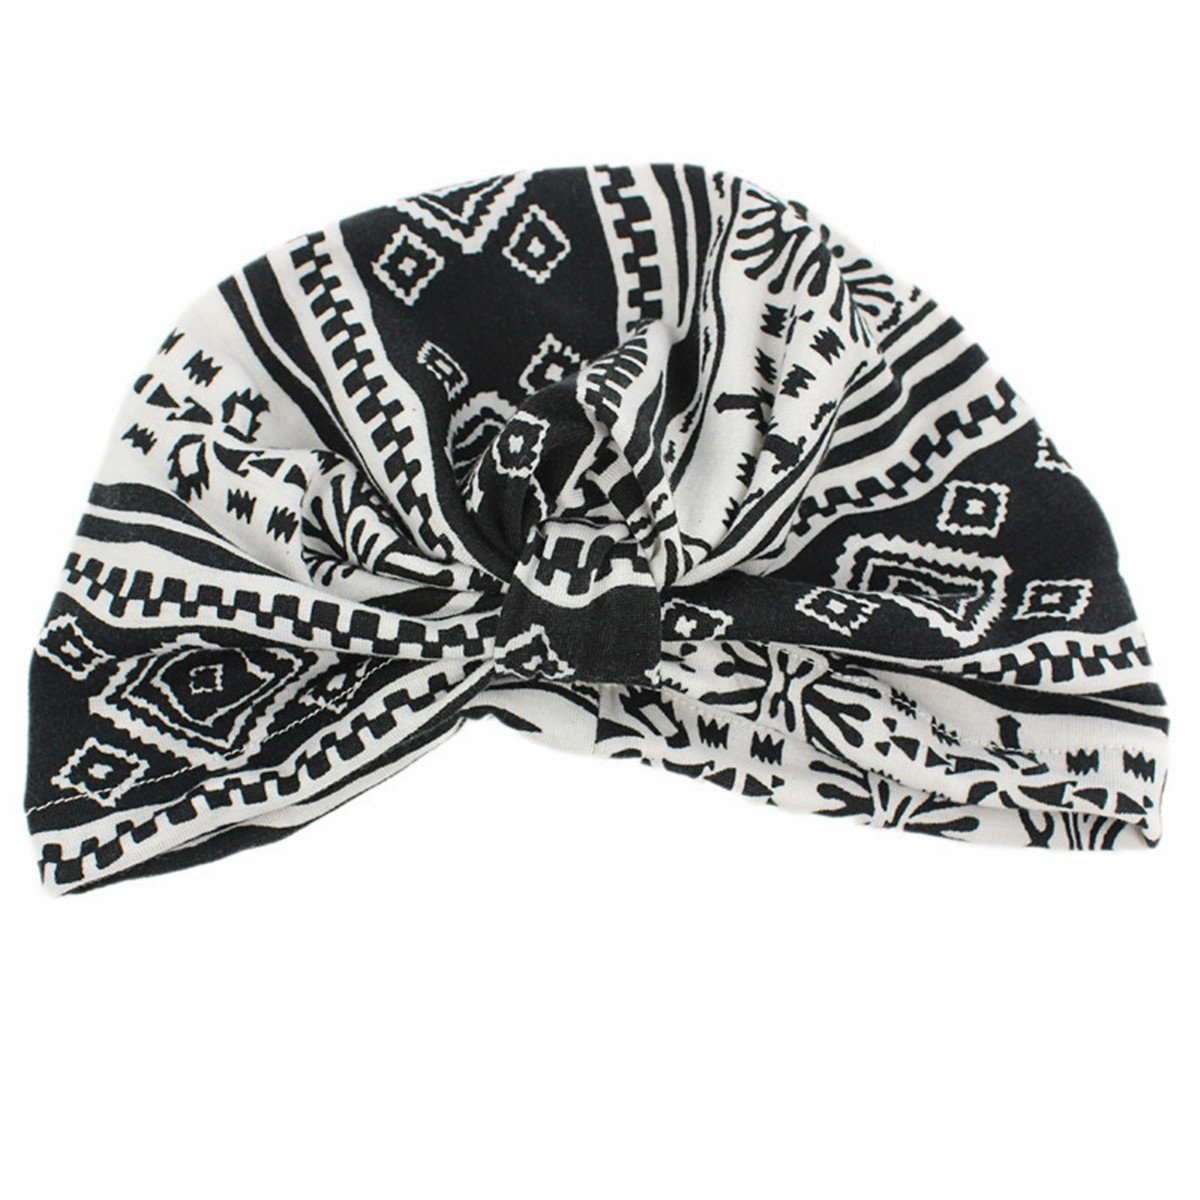 Qhome Vintage Floral Print Kids Turban Girls Cotton Hat